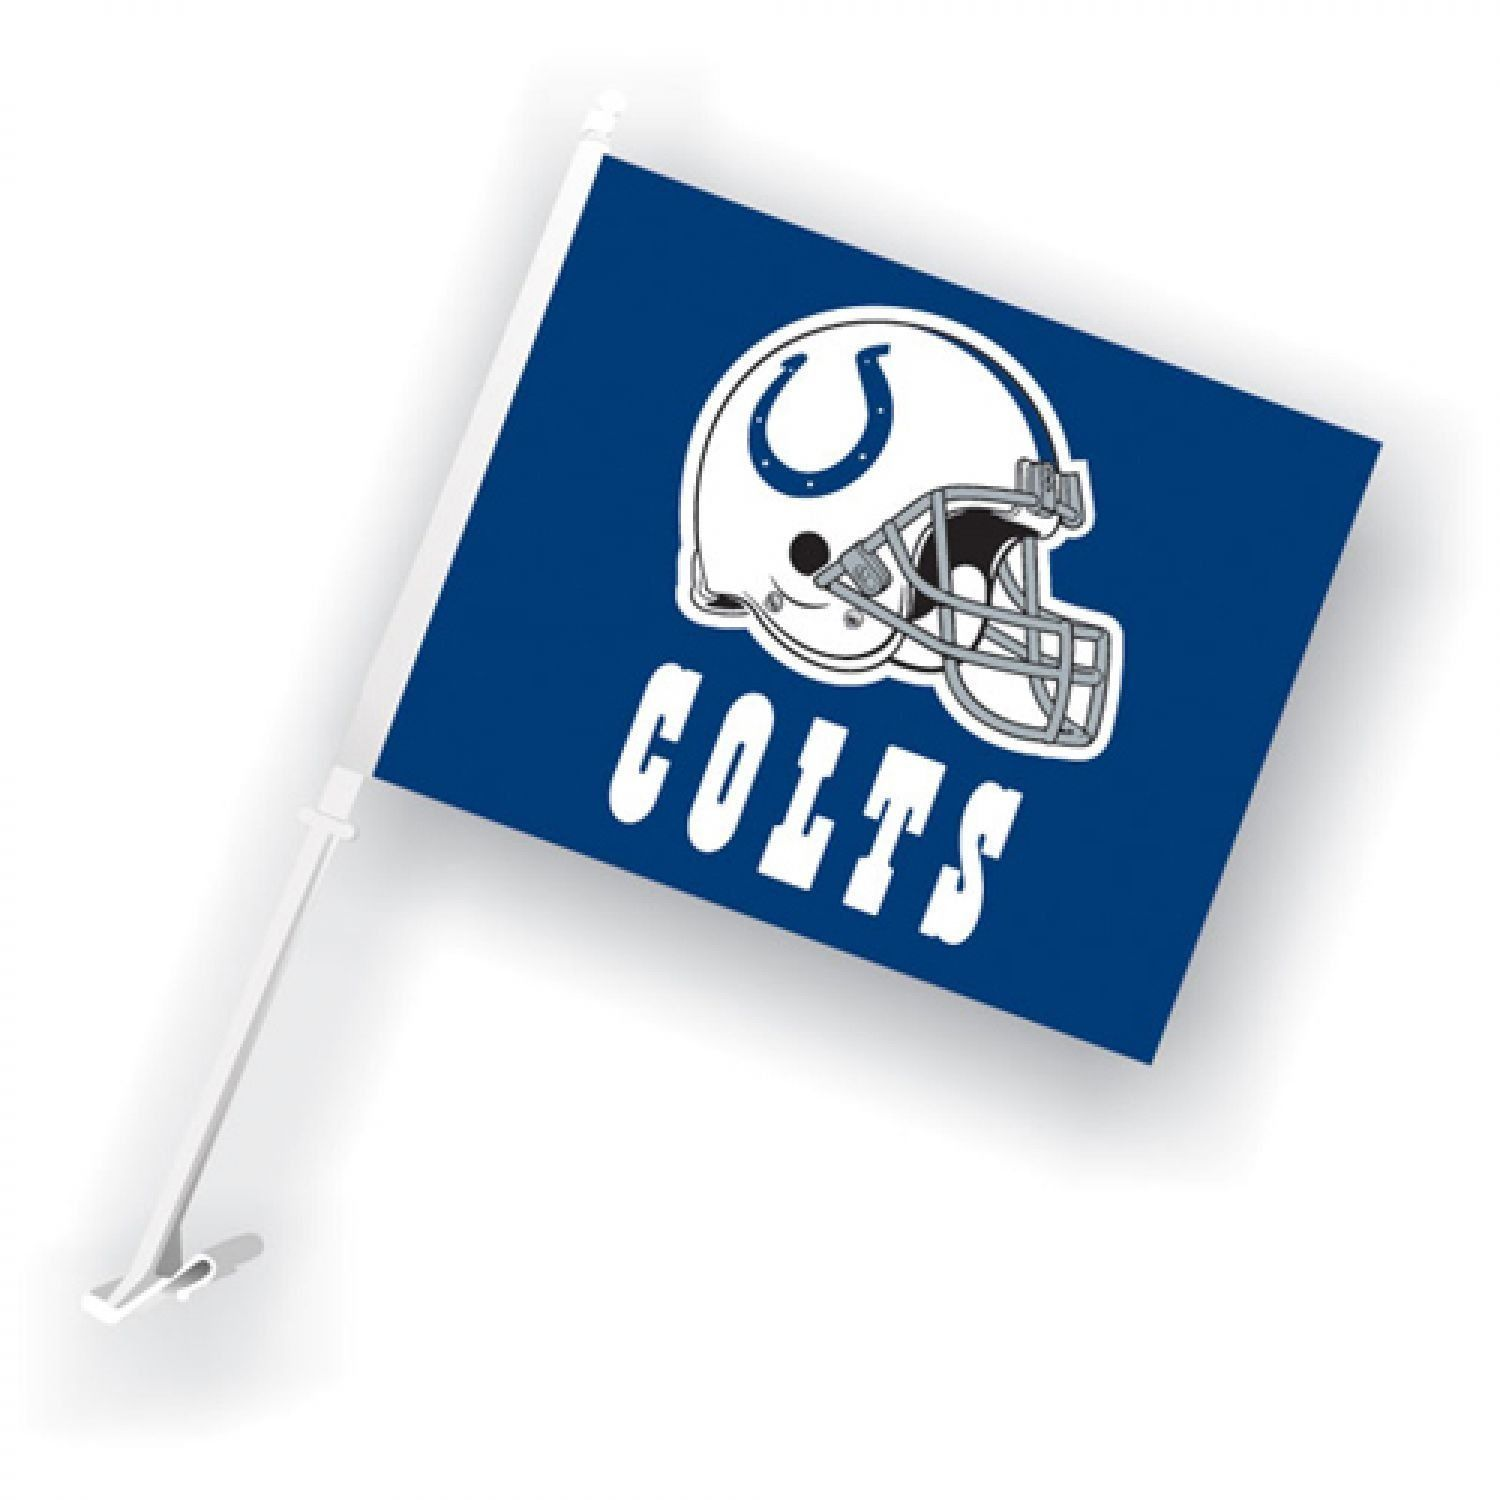 INDIANAPOLIS COLTS CAR AUTO FLAG BANNER & POLE 2 SIDED NFL FOOTBALL